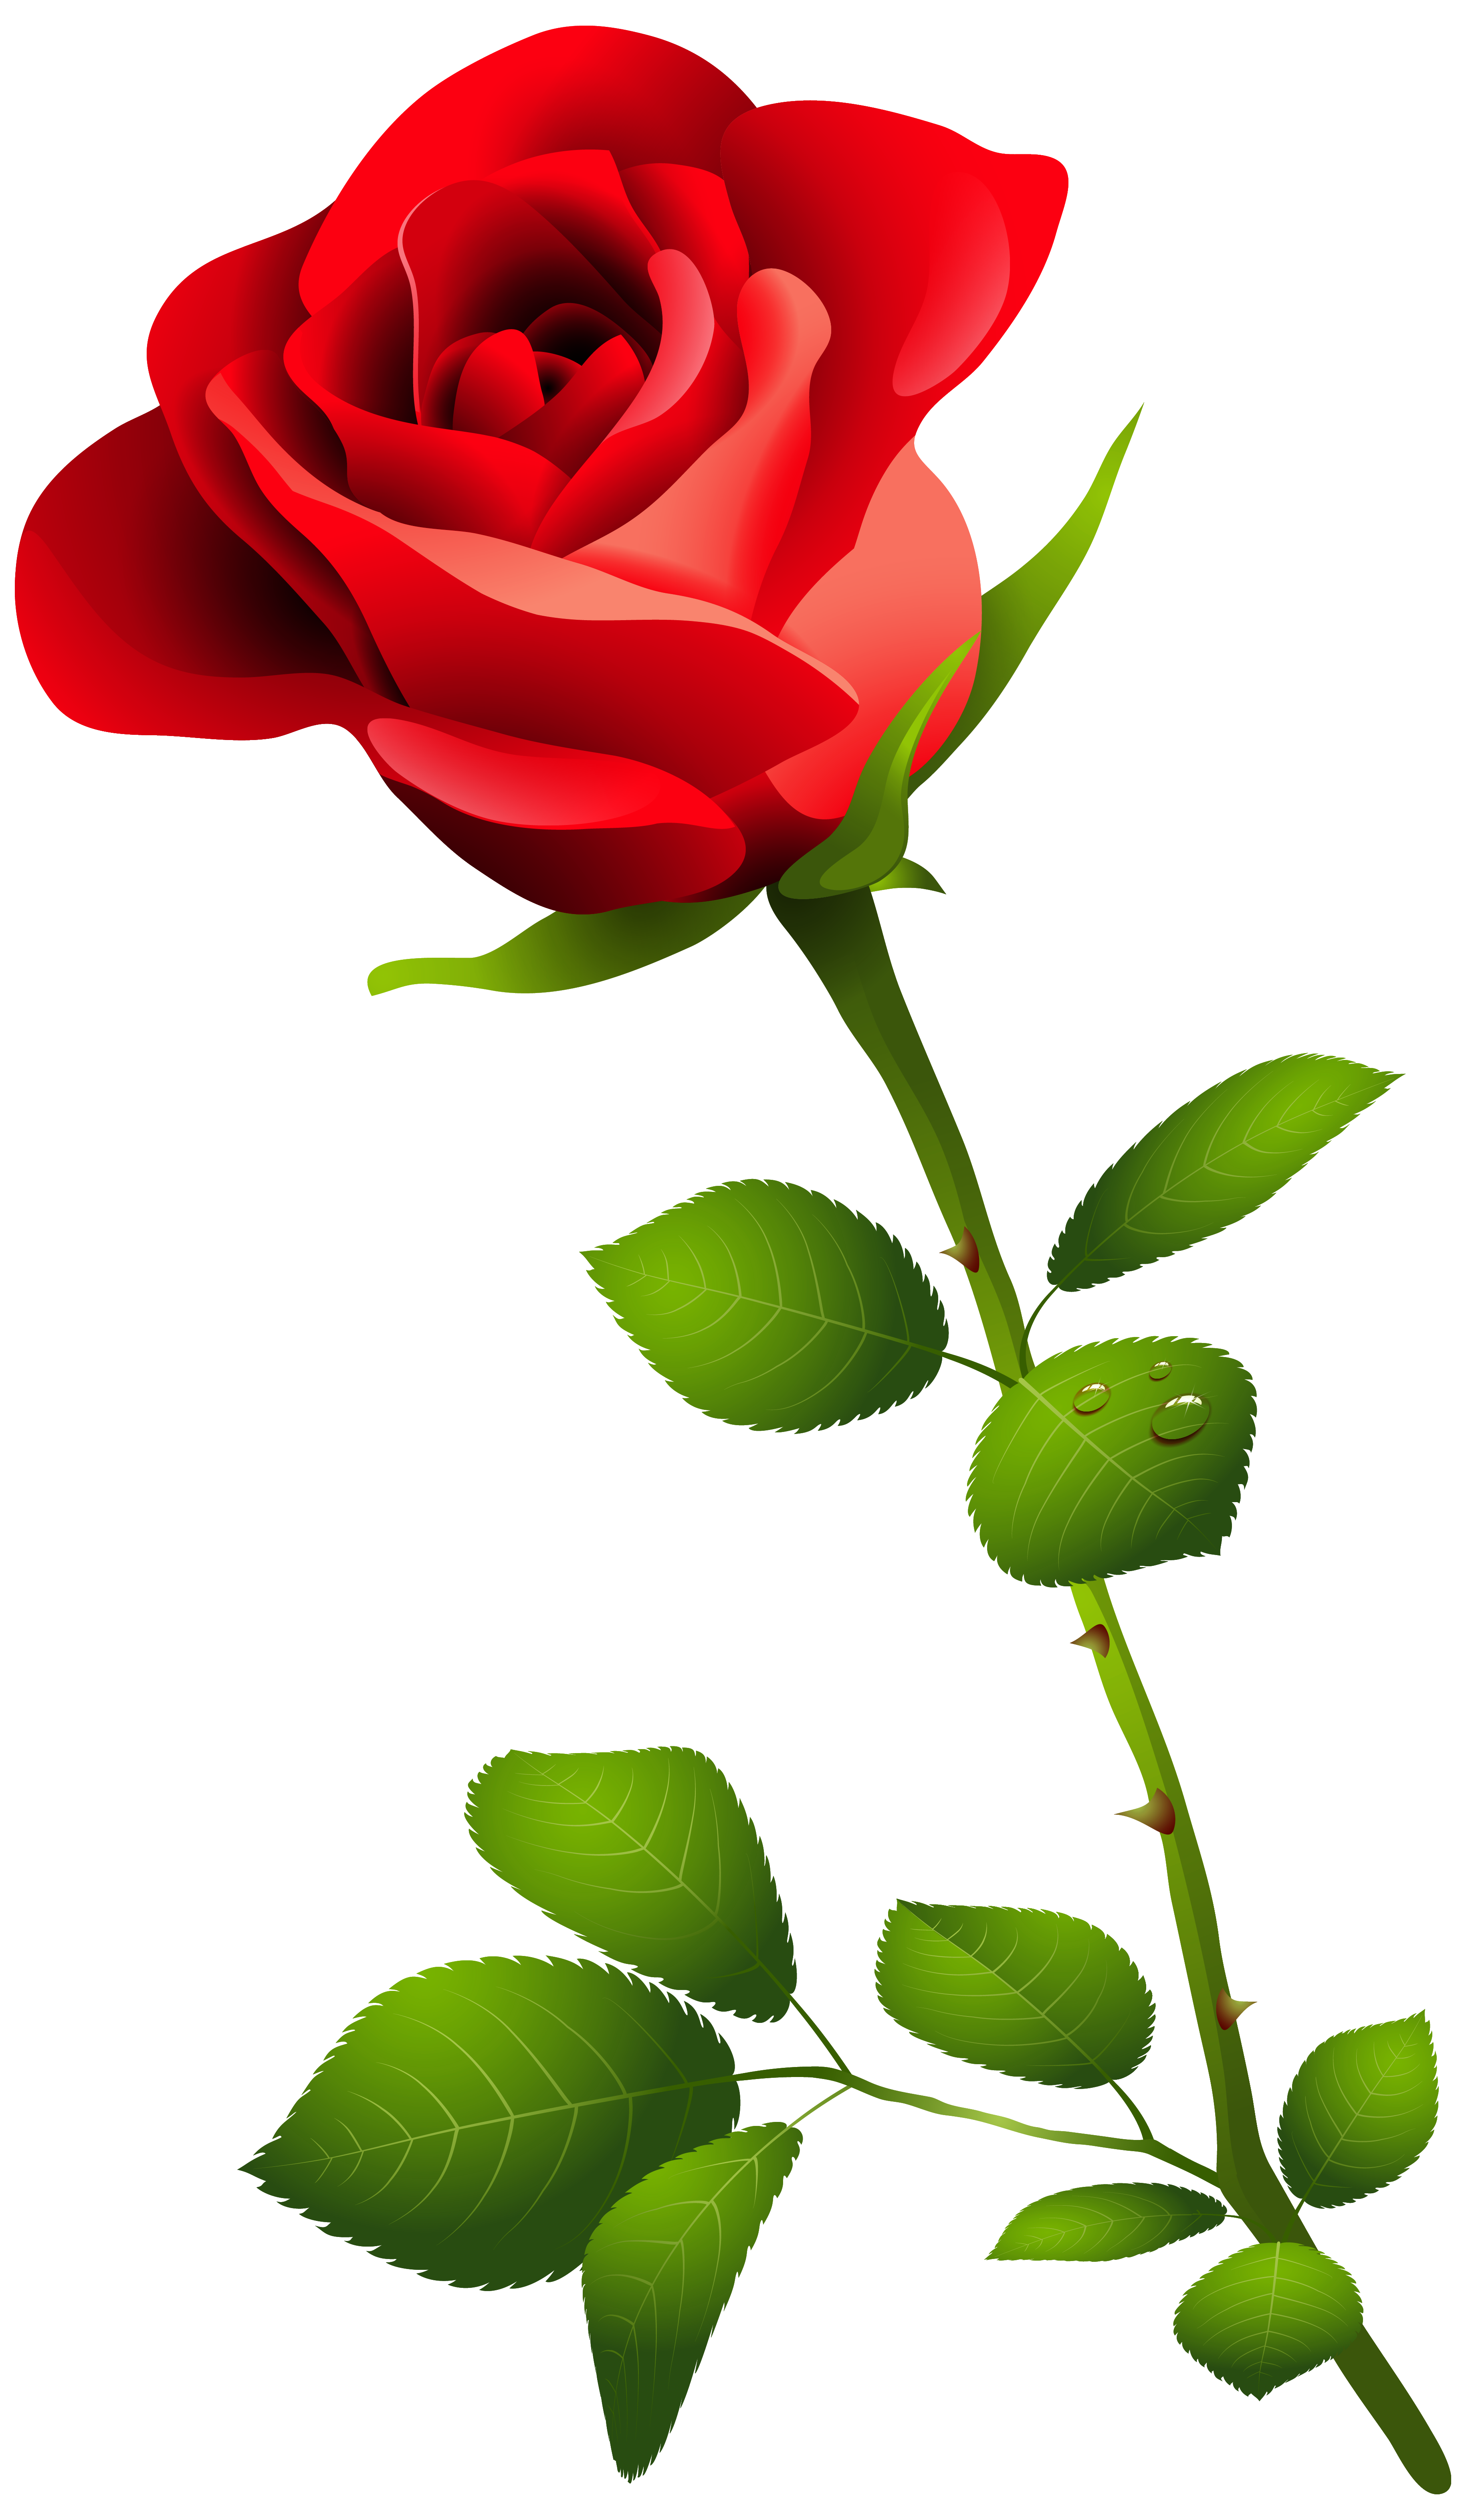 Red Rose With Stem Png Clipart Image Transparent Free Download ... image freeuse library